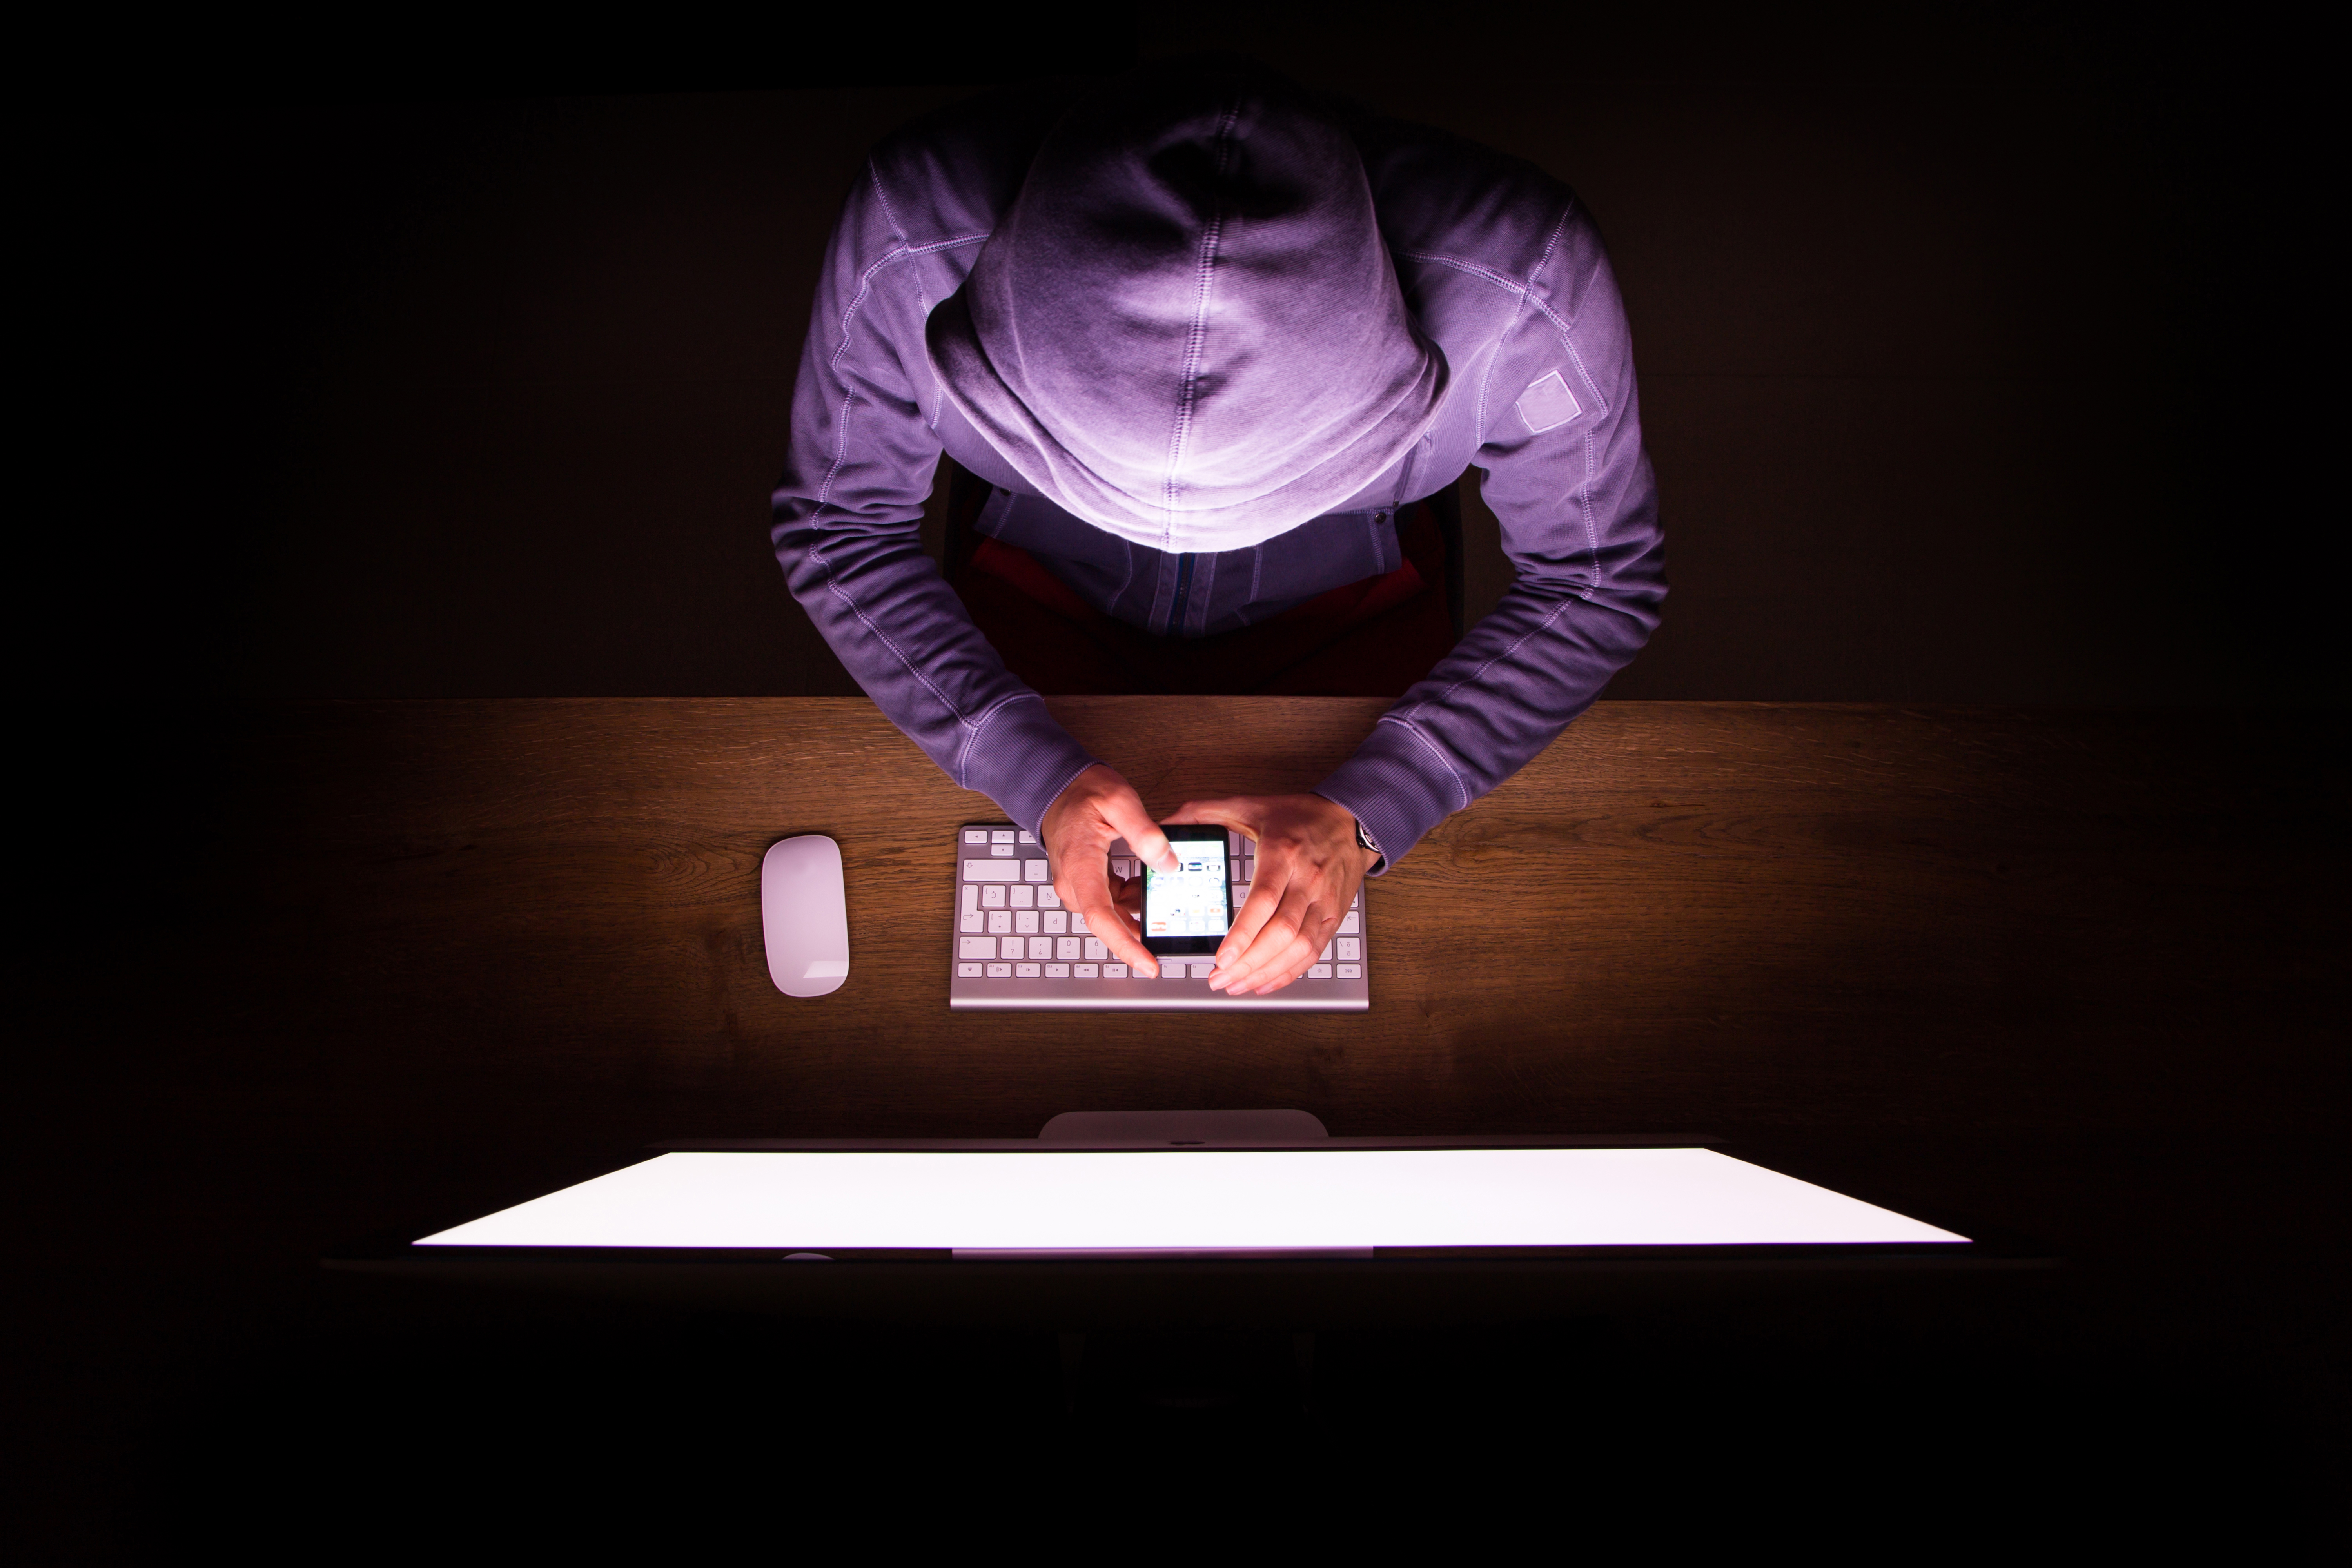 A mysterious scammer hacks into private information through a computer and smart phone.